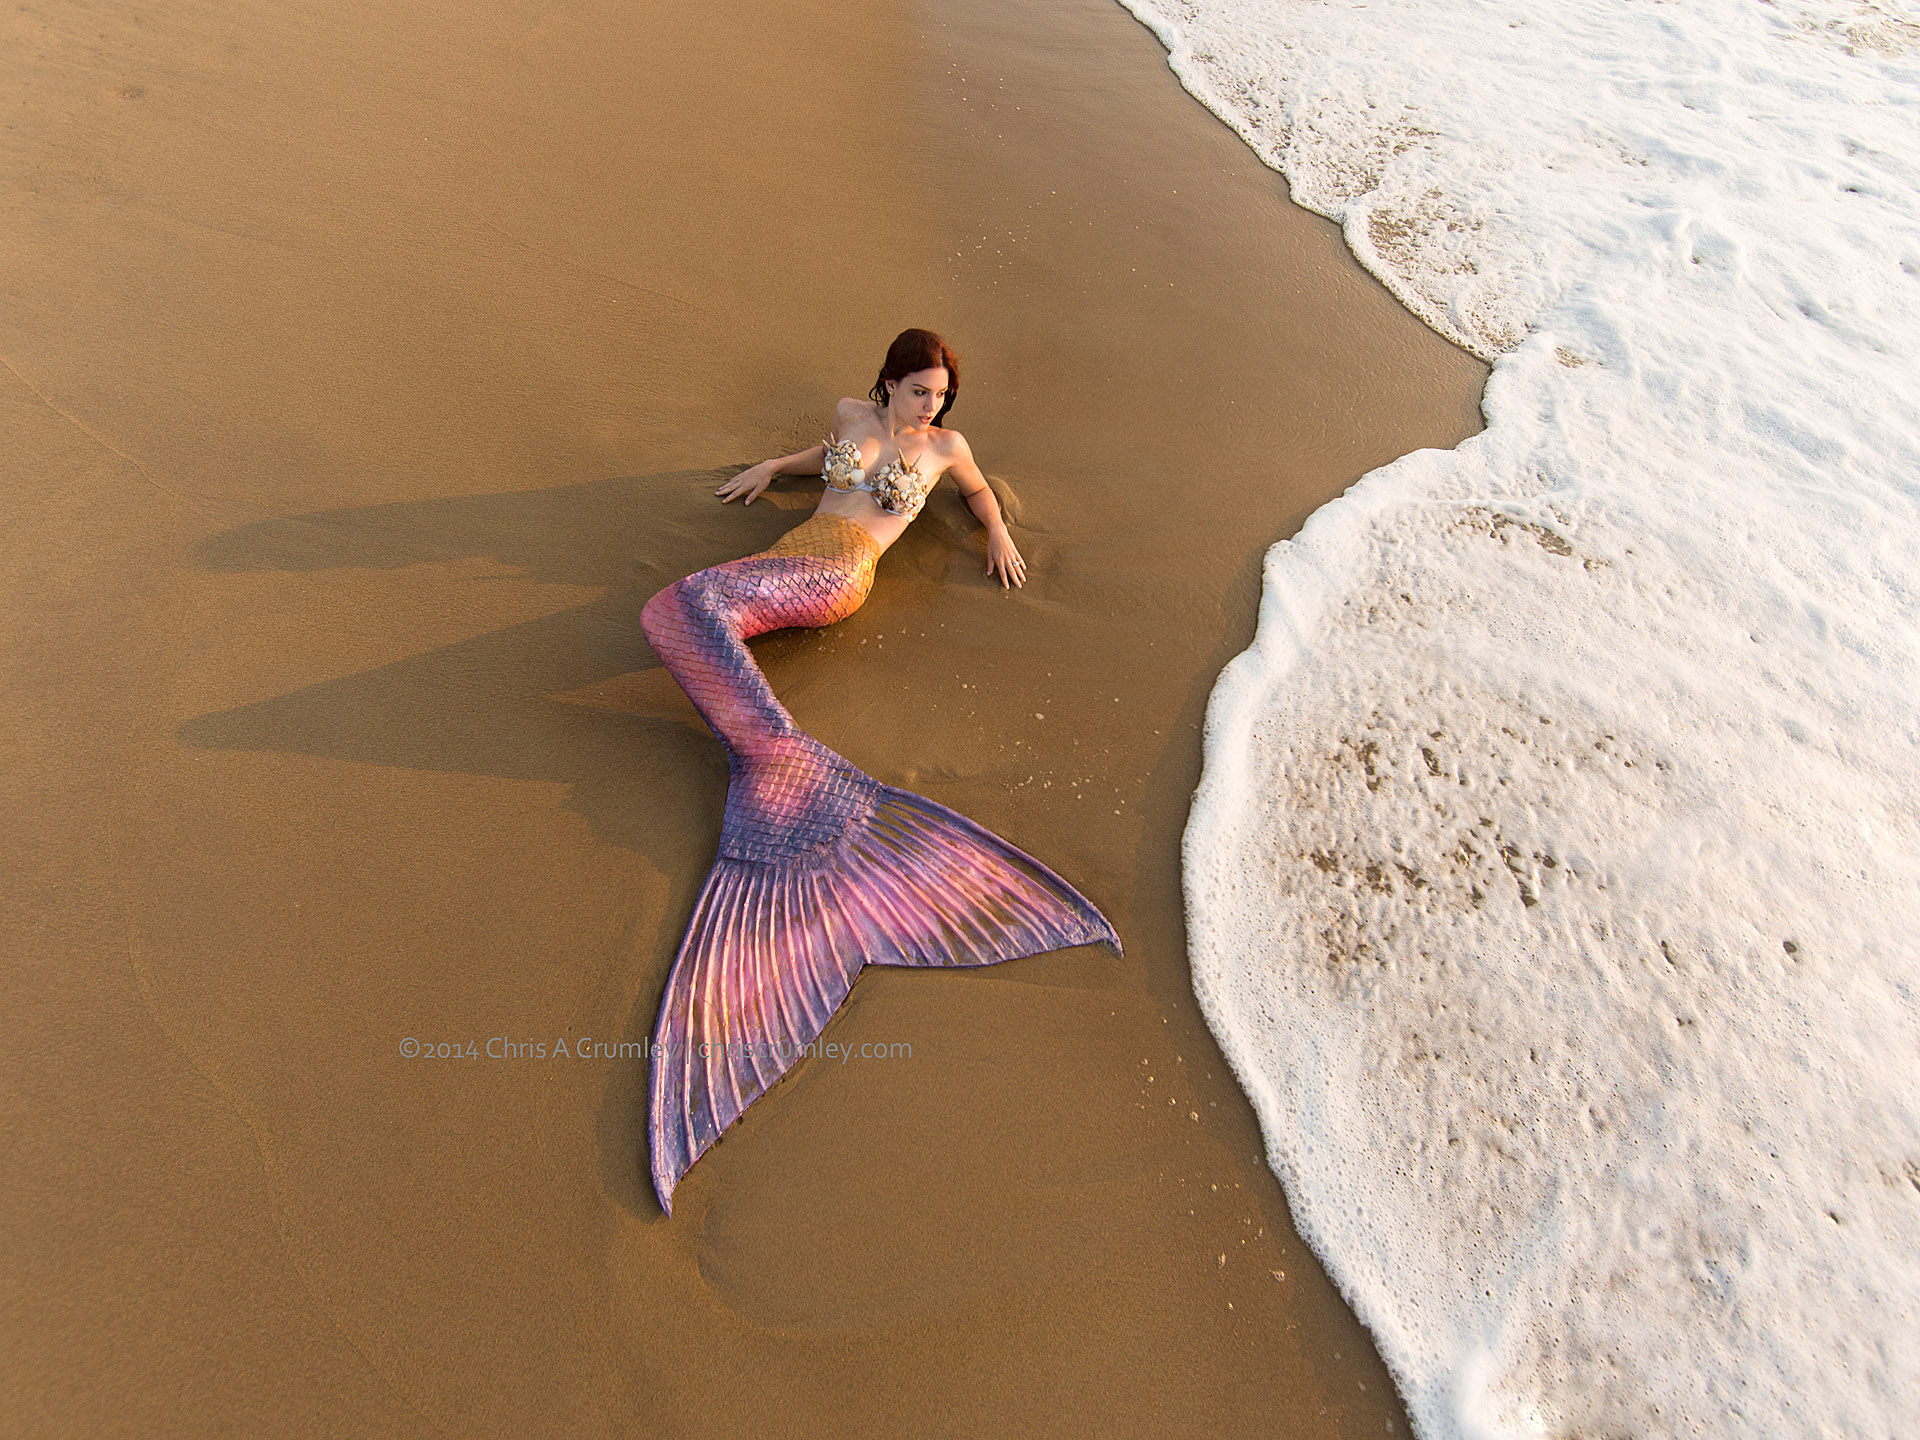 Mermaid on the beach at sunrise, Virginia Beach, VA